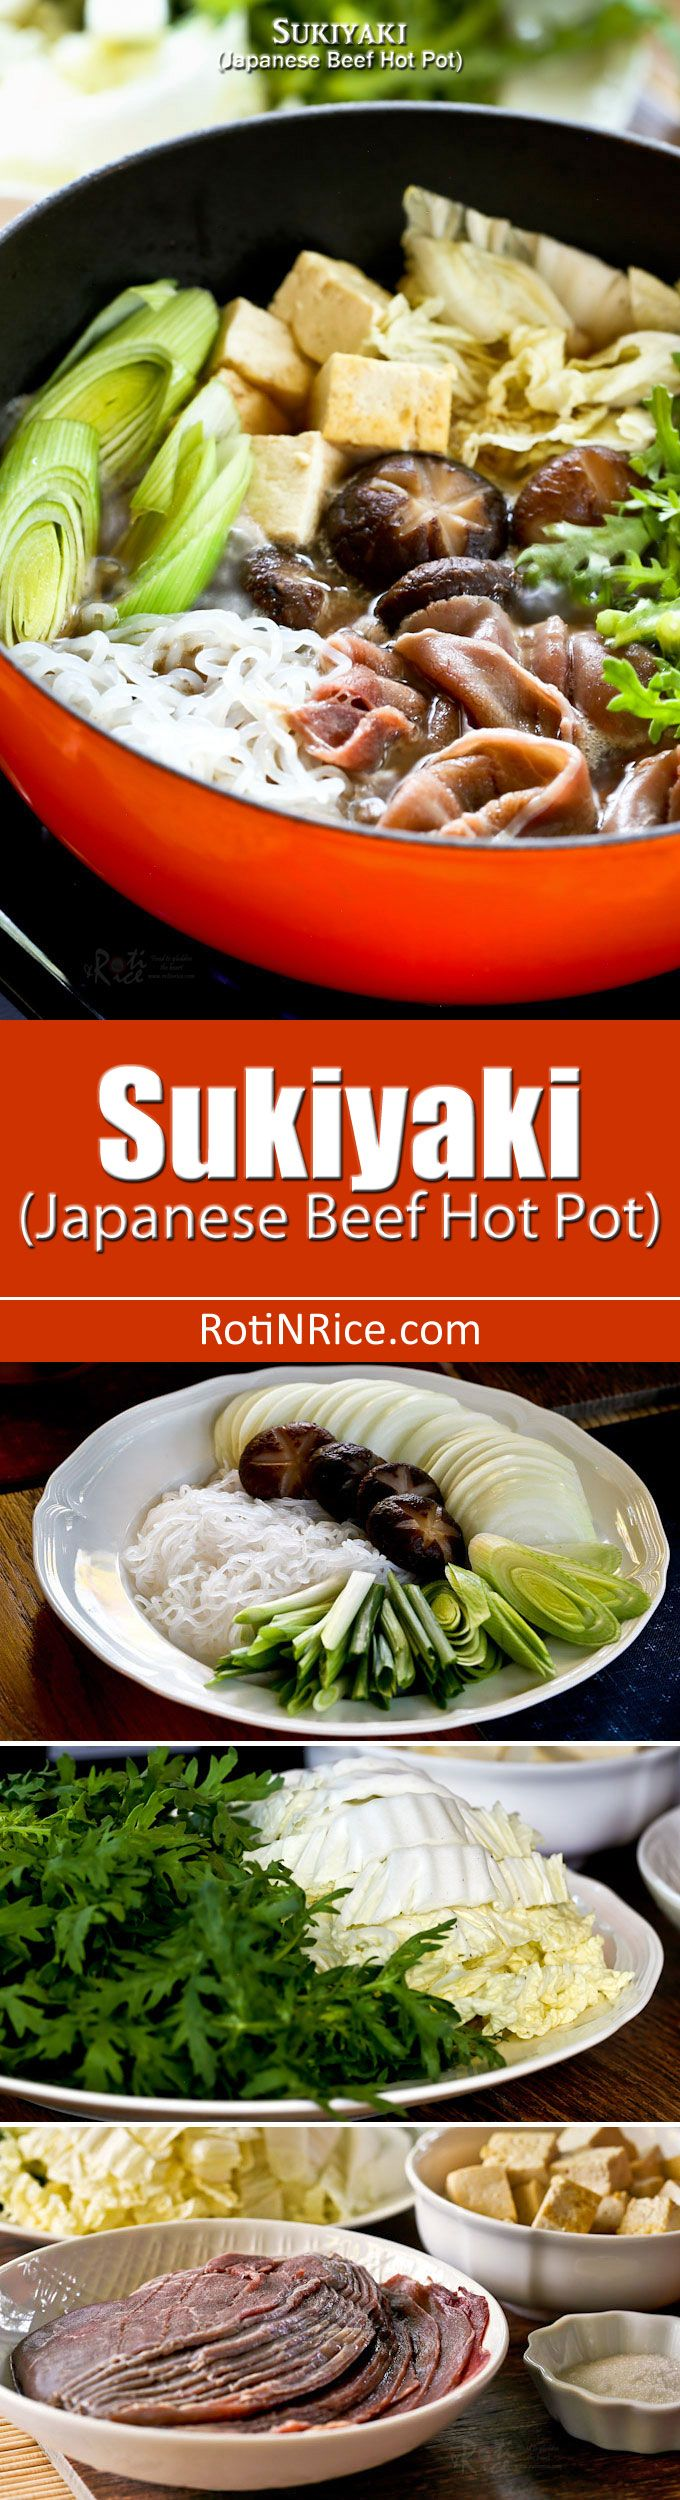 Enjoy Sukiyaki, a popular Japanese Beef Hot Pot often cooked and served at the…